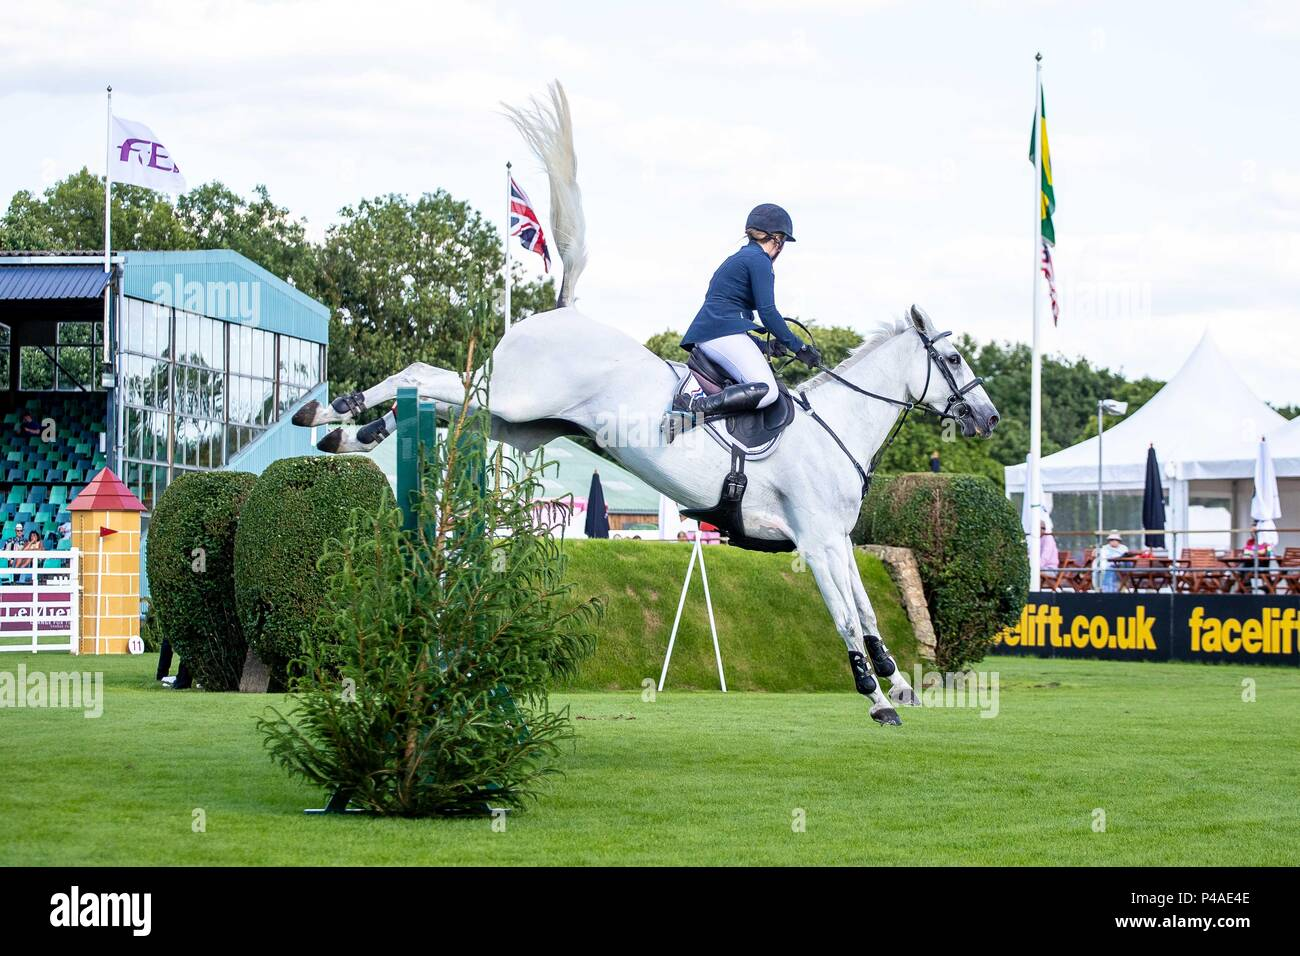 Sammie Jo Coffin riding Bellany ll. GBFR. The Bunn Lesiure Tankard. CSI4*. The Al Shira'aa Hickstead Derby Meeting. Showjumping. The All England Jumping Course. Hickstead. West Sussex. UK. Day 2. 21/06/2018. - Stock Image